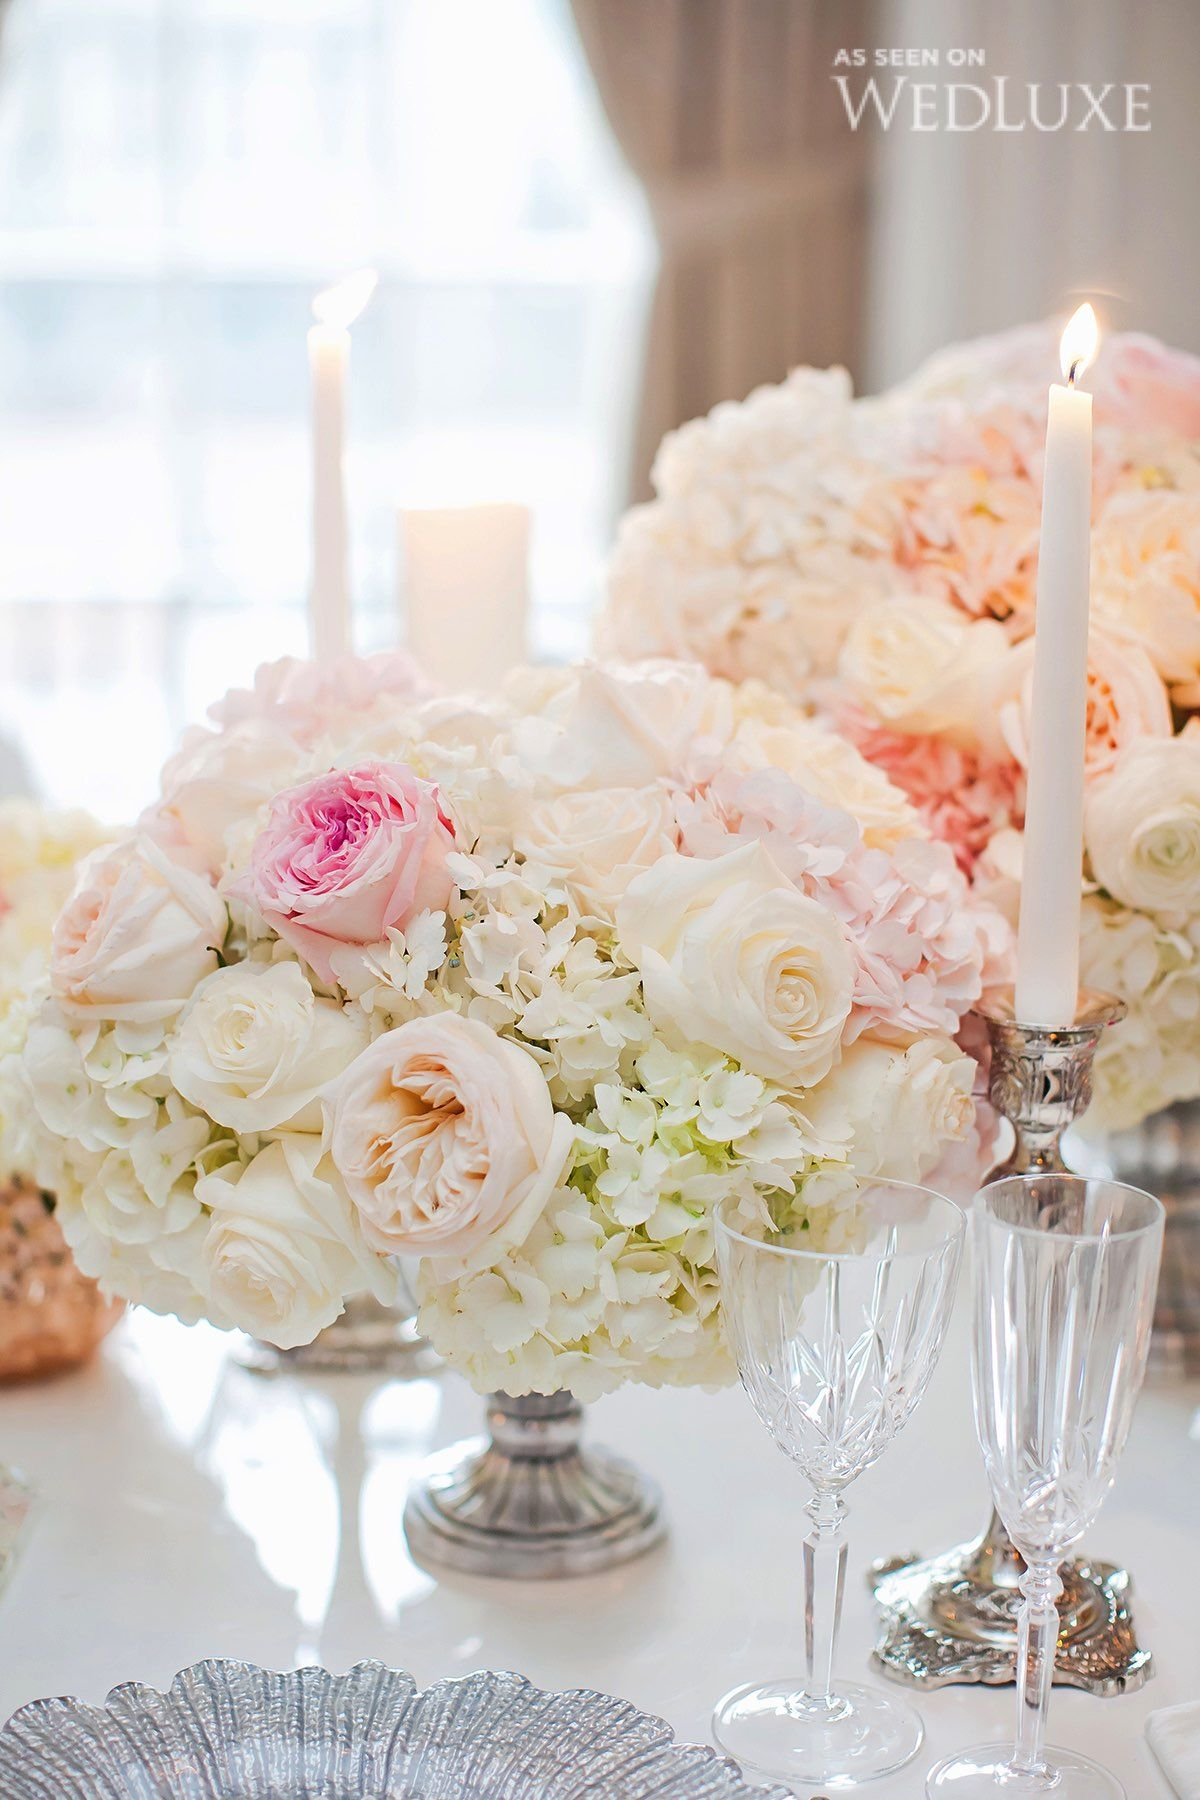 WedLuxe – Modern Romance | Photography by: Denise Lin Photography ...